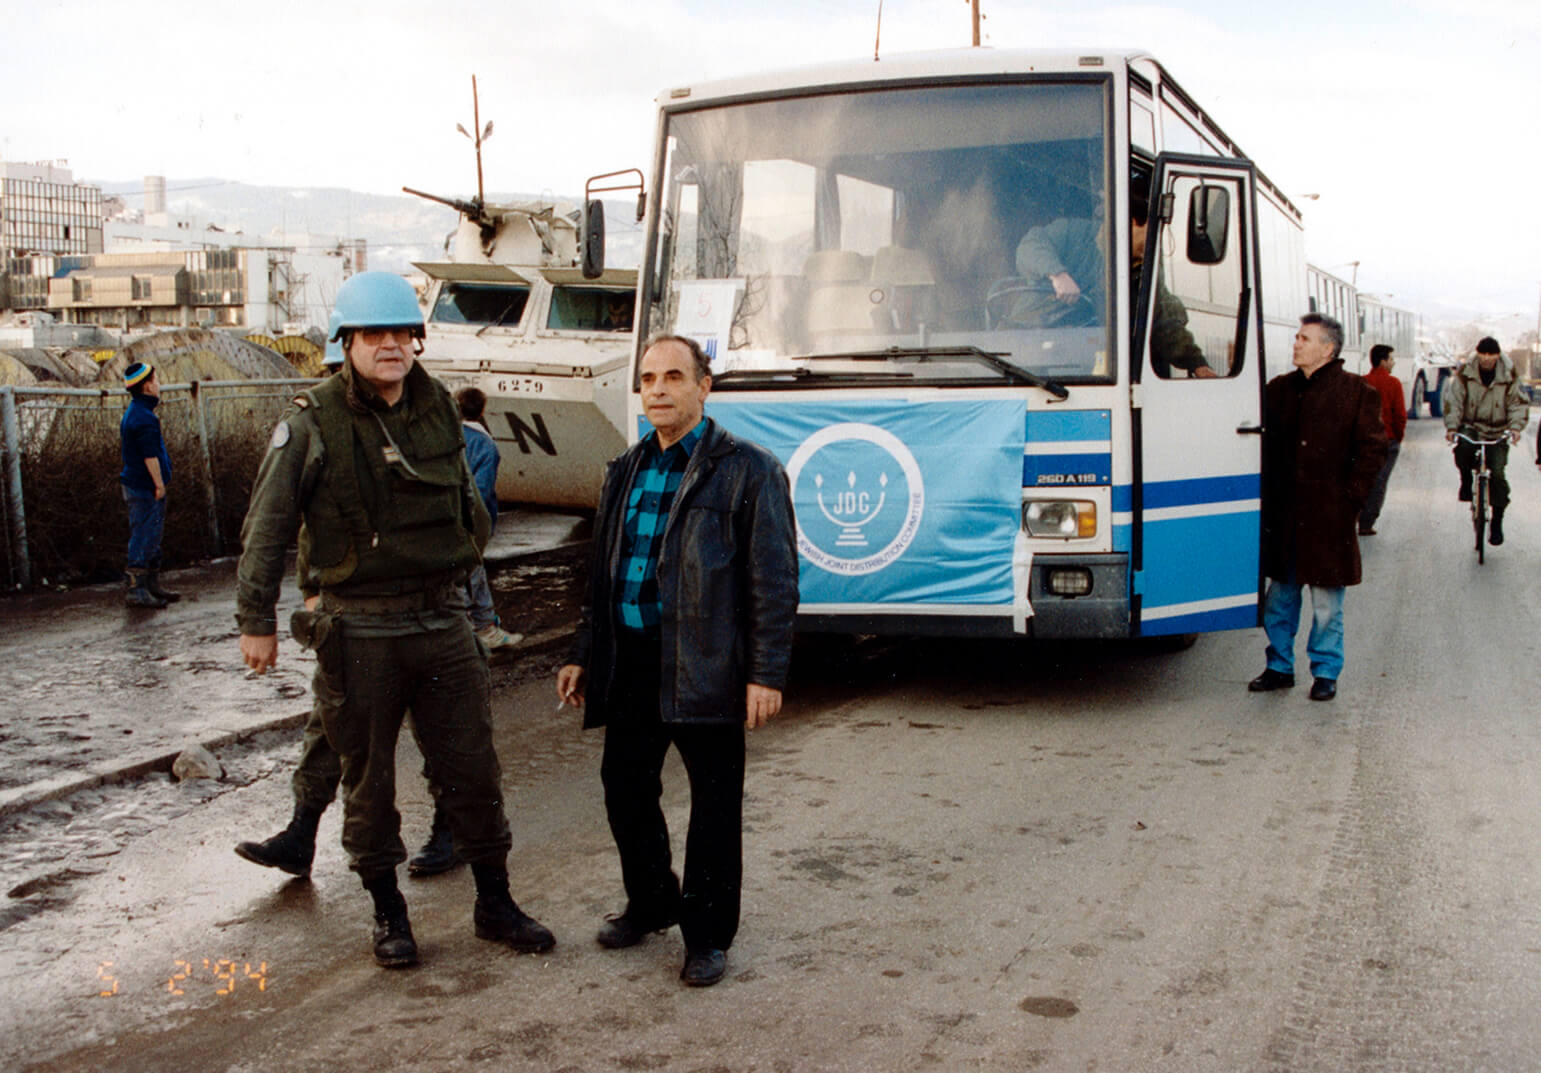 JDC aid workers standing next to a bus and military tank in Sarajevo during the Siege of Sarajevo.